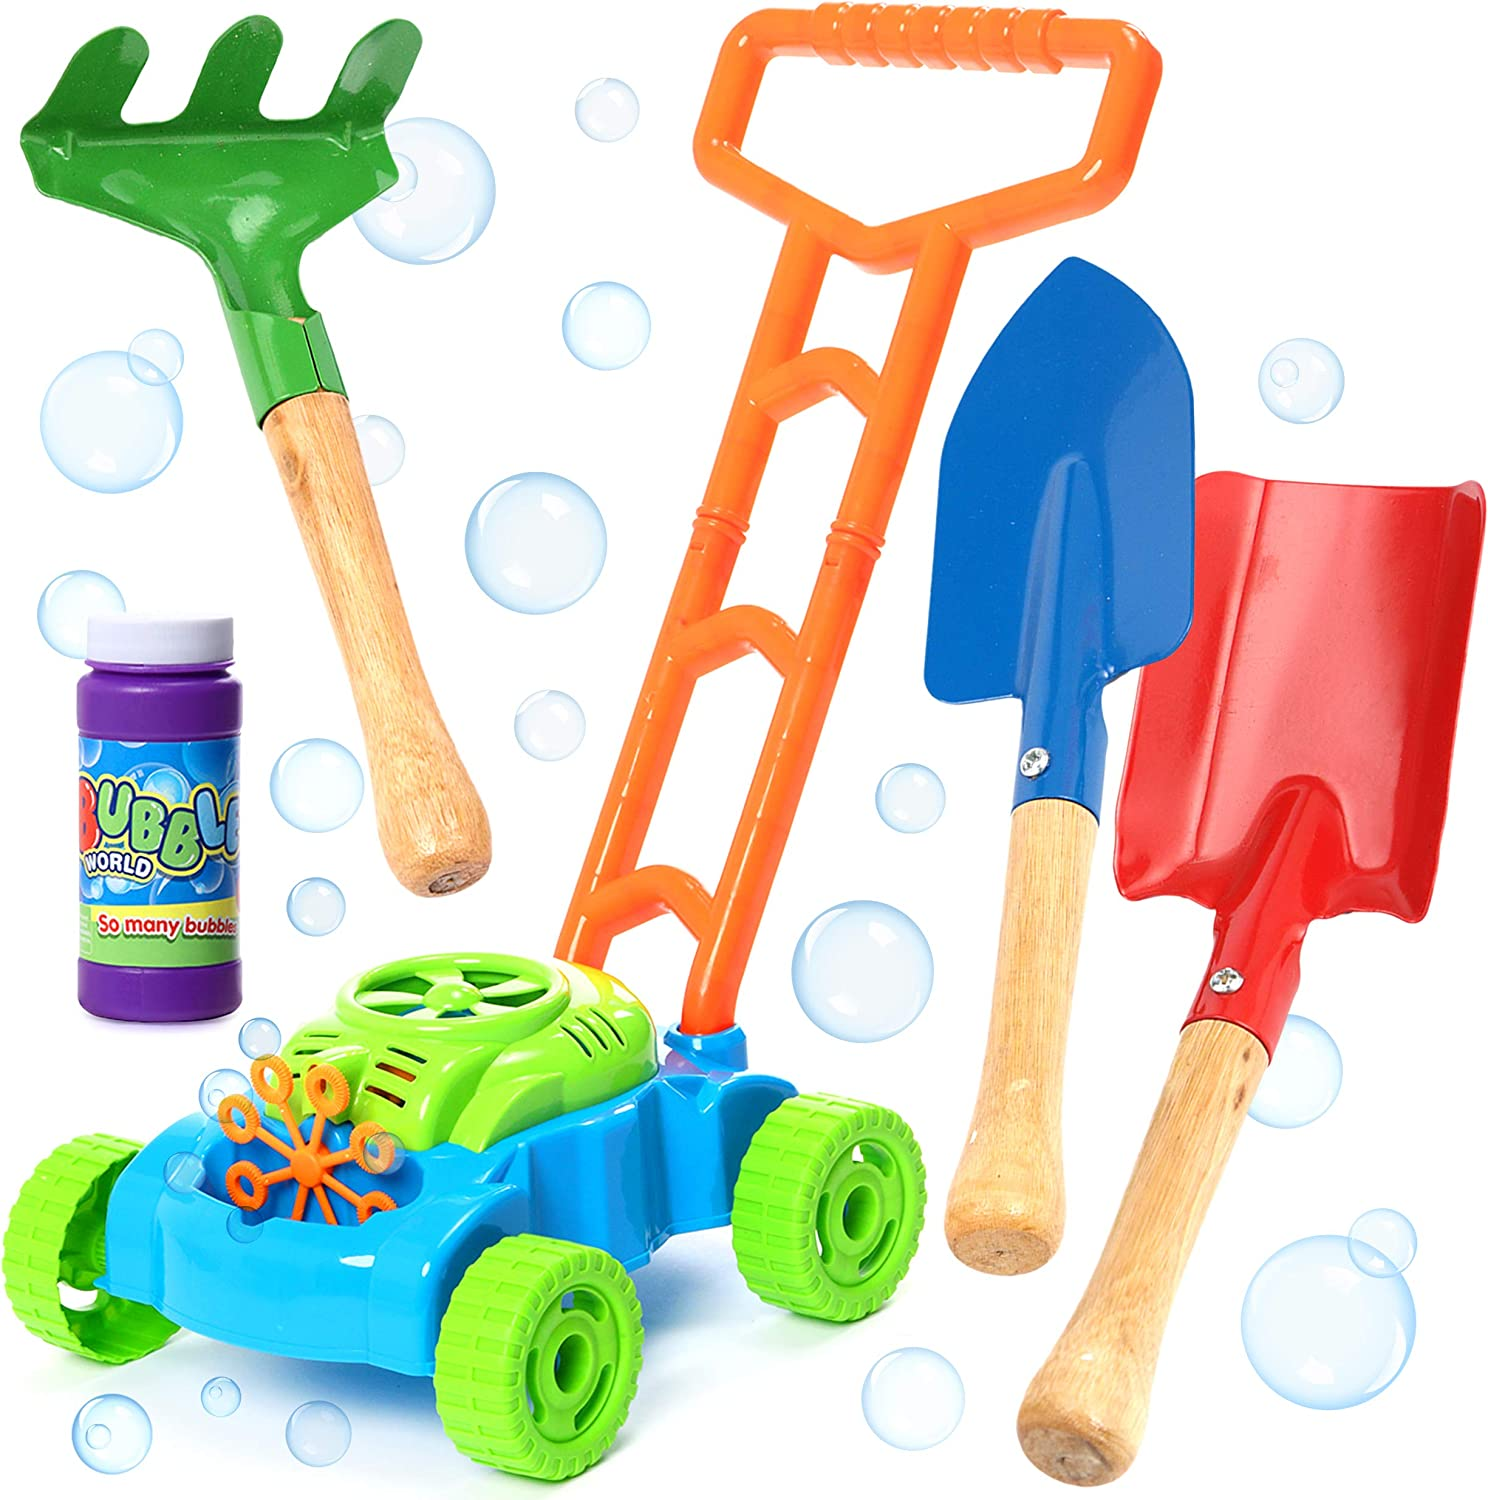 Bubble Lawn Mower Bundle with Kids Shovel and Rake Gardening Tools Set Features Metal Kids Shovel with Wooden Handles & Battery Operated Bubble Mower